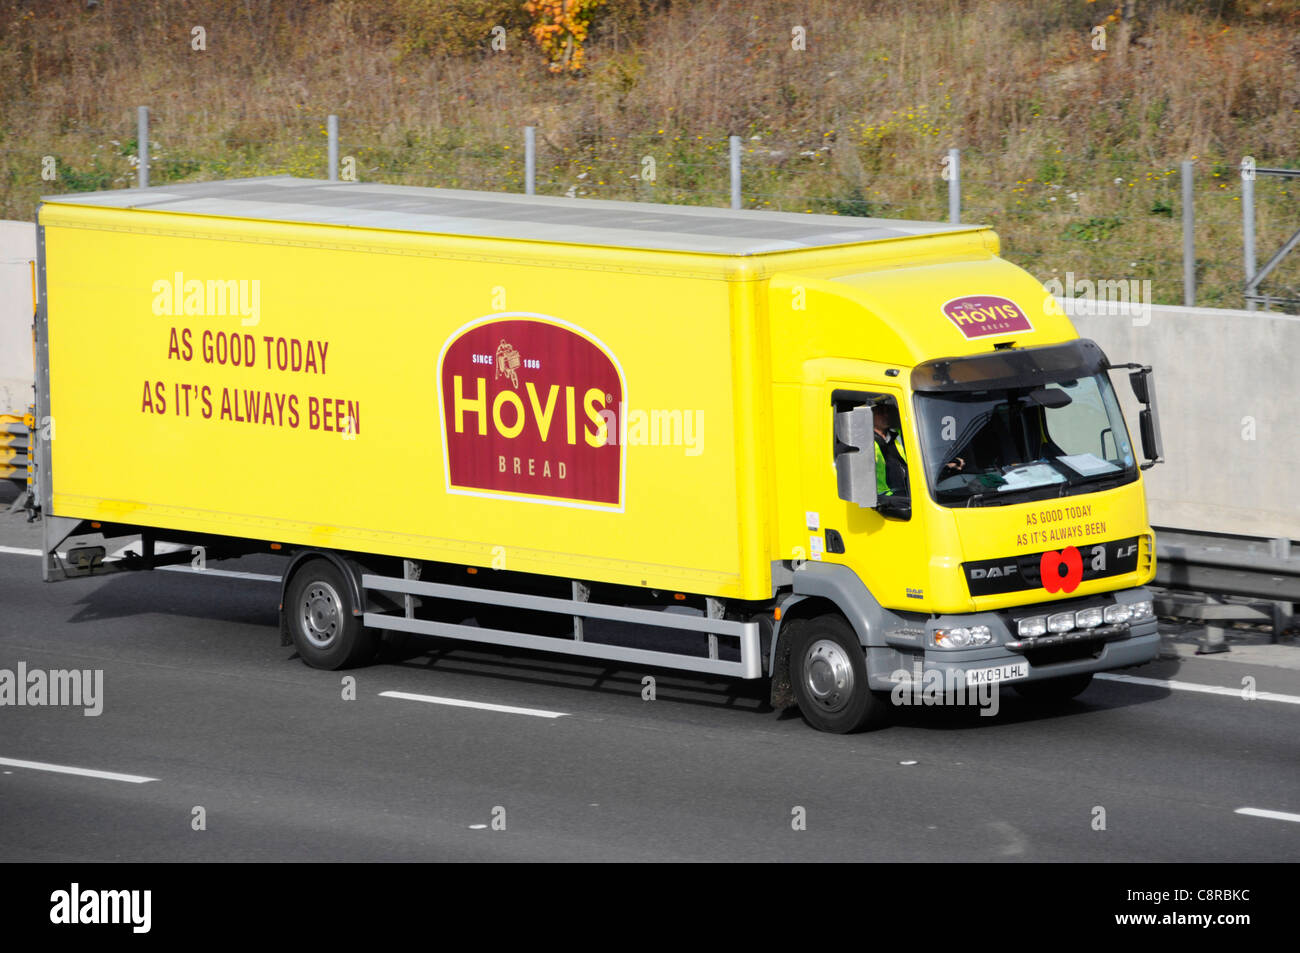 Hovis bread food supply chain rigid body delivery lorry yellow truck displaying logo and advertising driving along - Stock Image